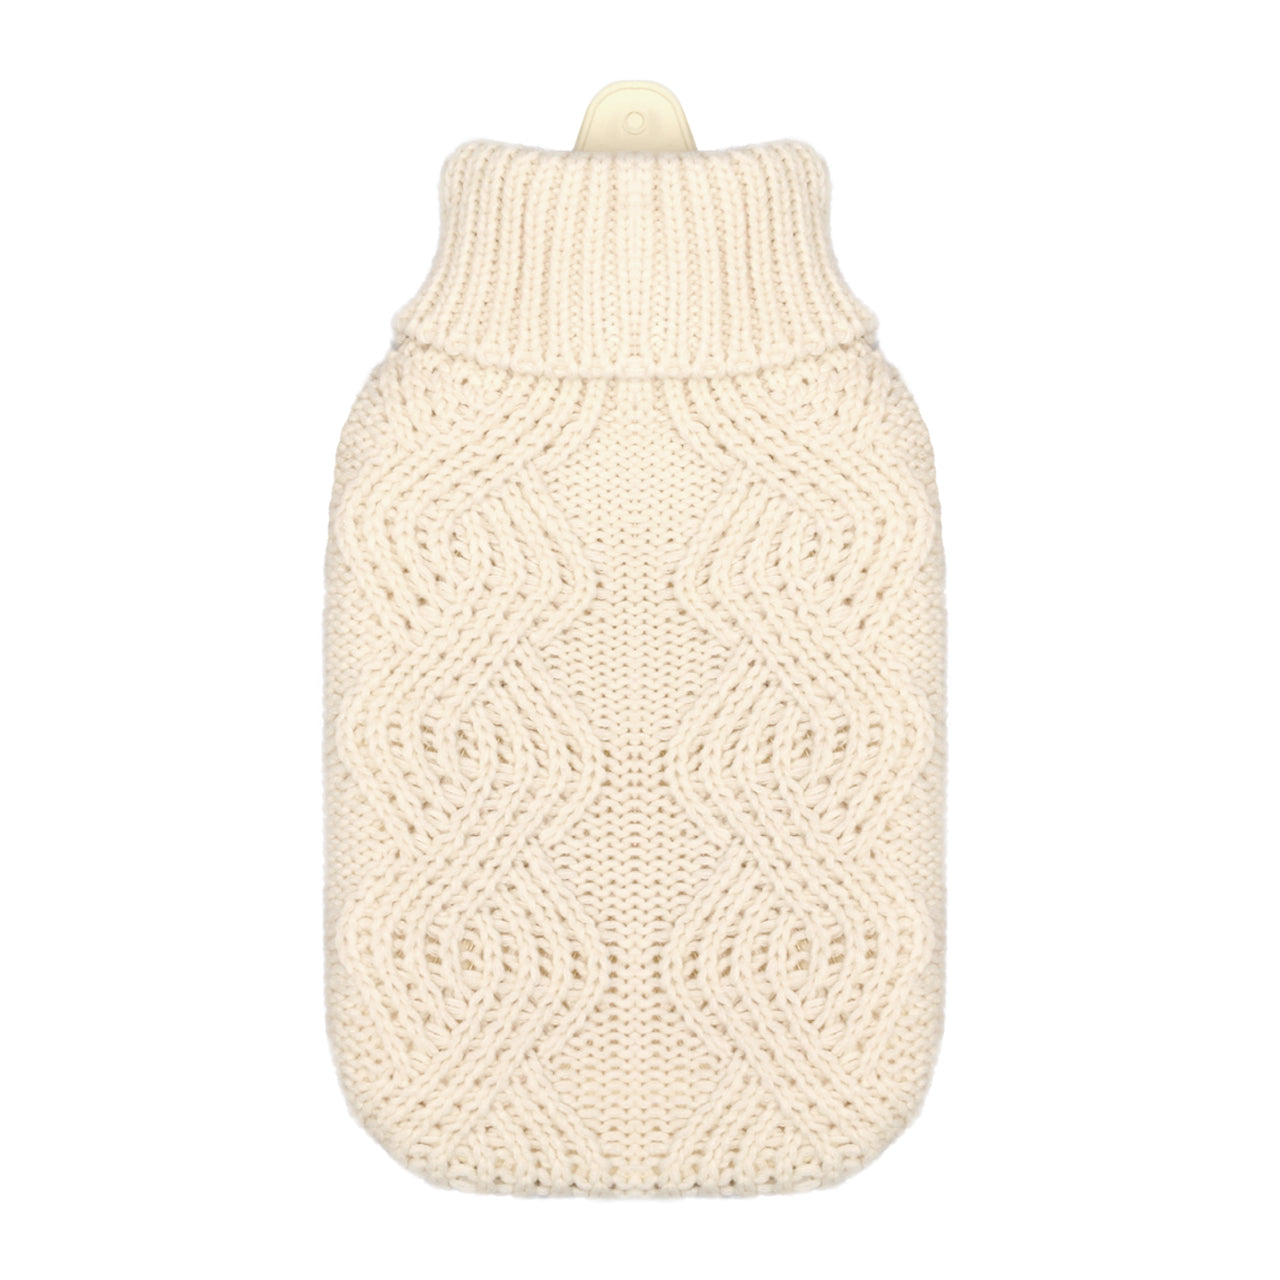 Hot Water Bottle & Cover - Cream Cable Knit - The Grain Shop Online Store